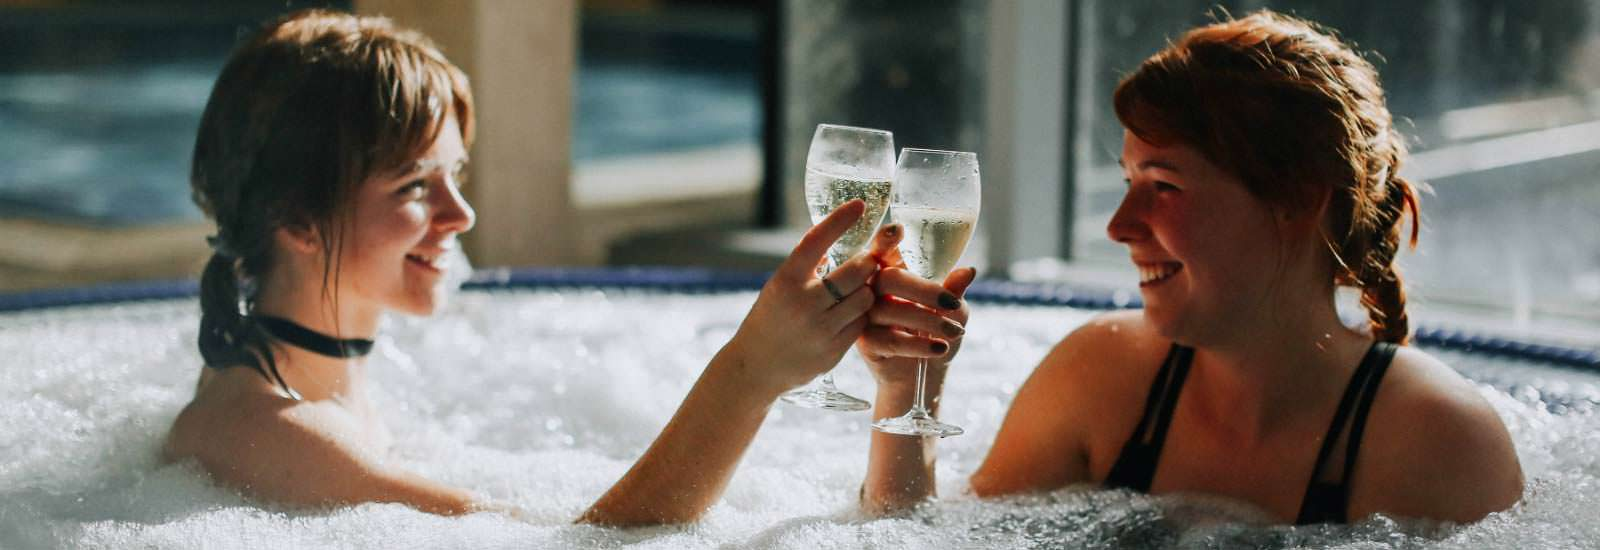 Enjoy a glass of wine at temple spa